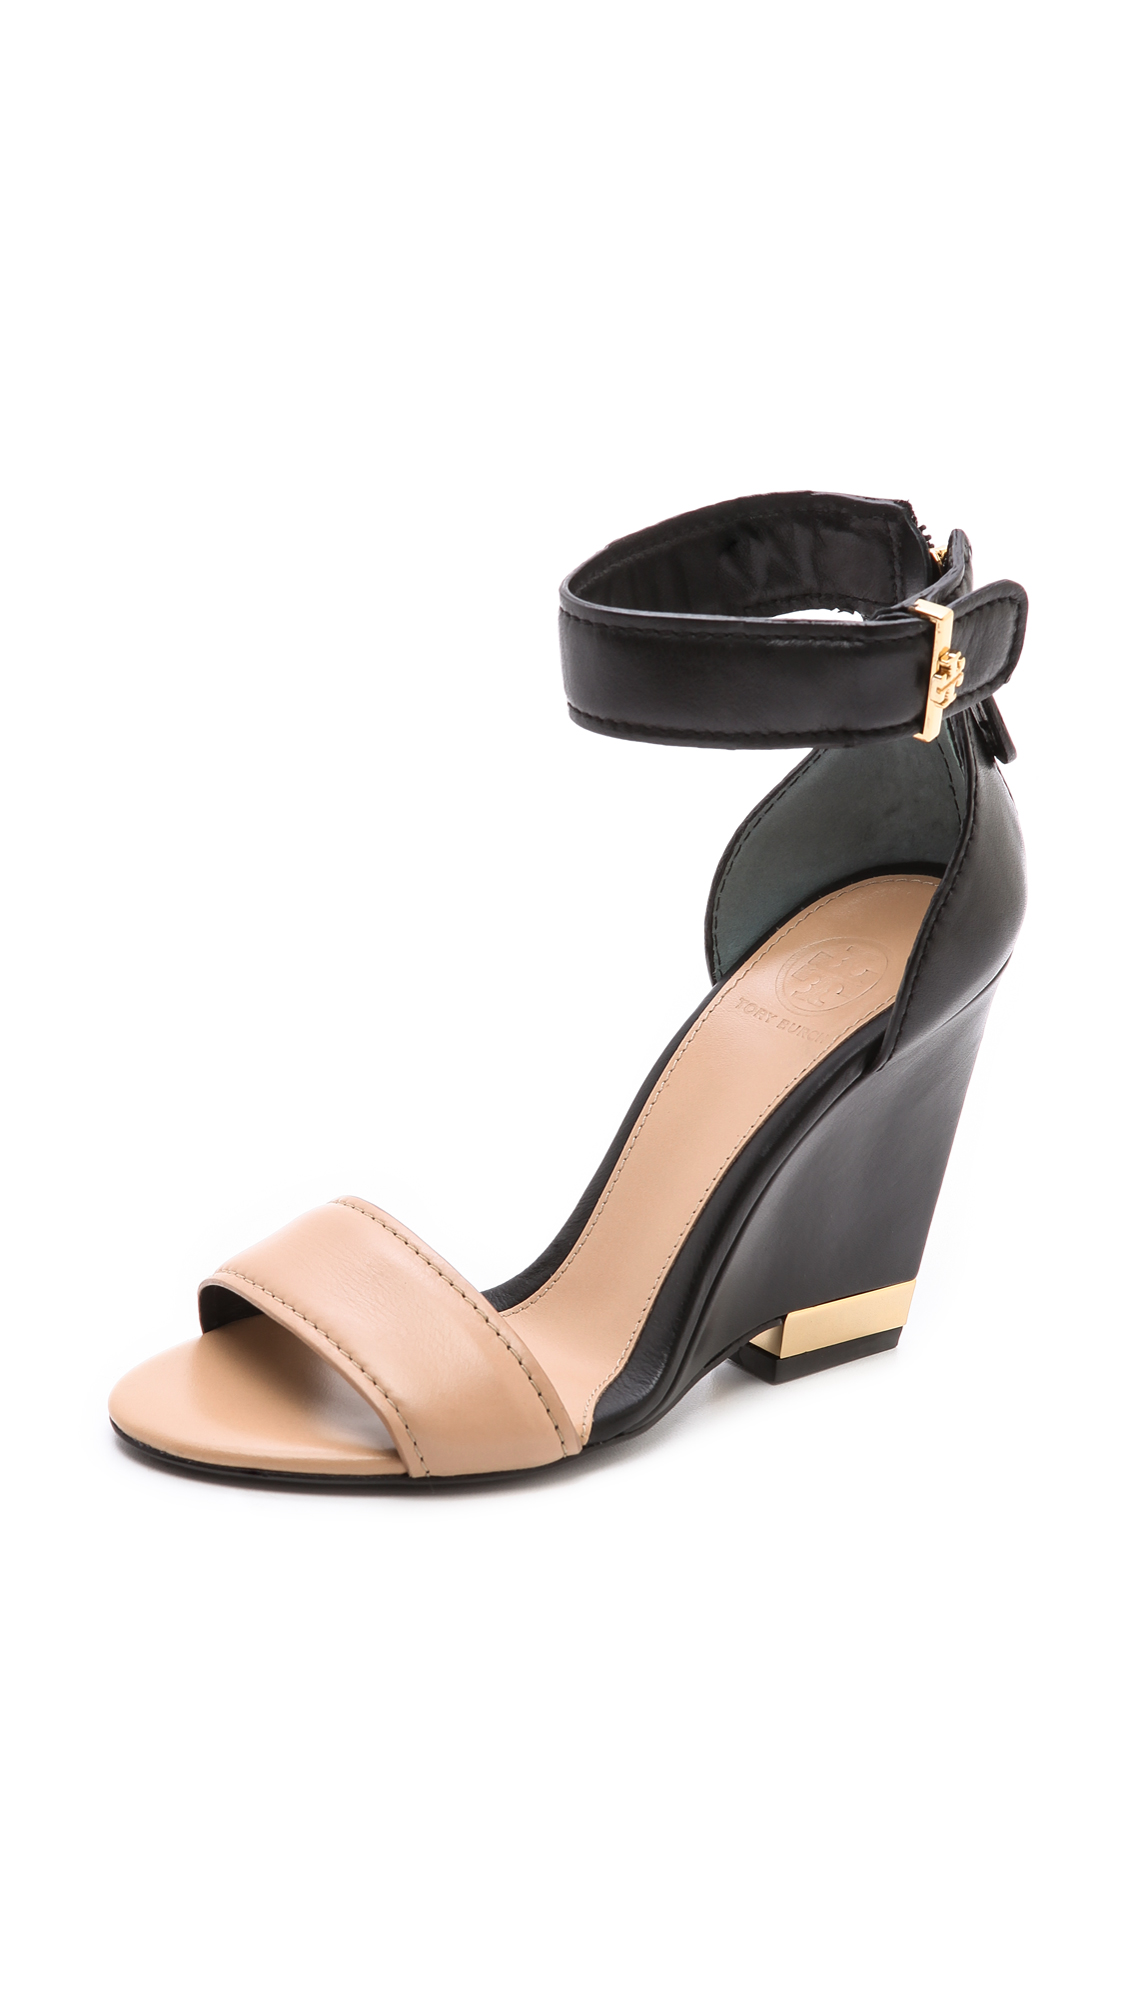 3e9918ea2cf1e Lyst - Tory Burch Carolyn Wedge Sandals in Black